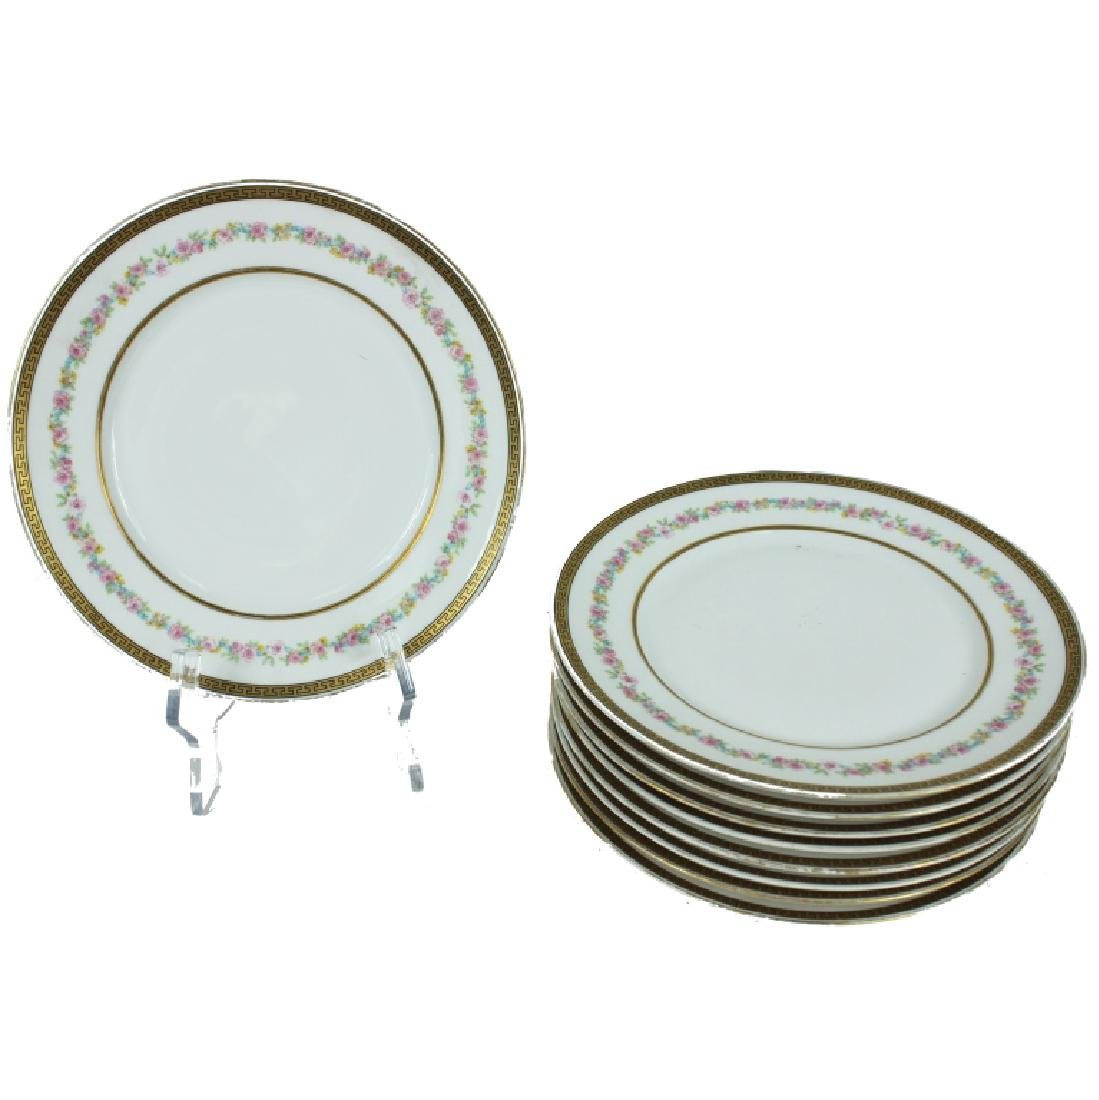 (9) NINE FRENCH PLATES LIMOGES